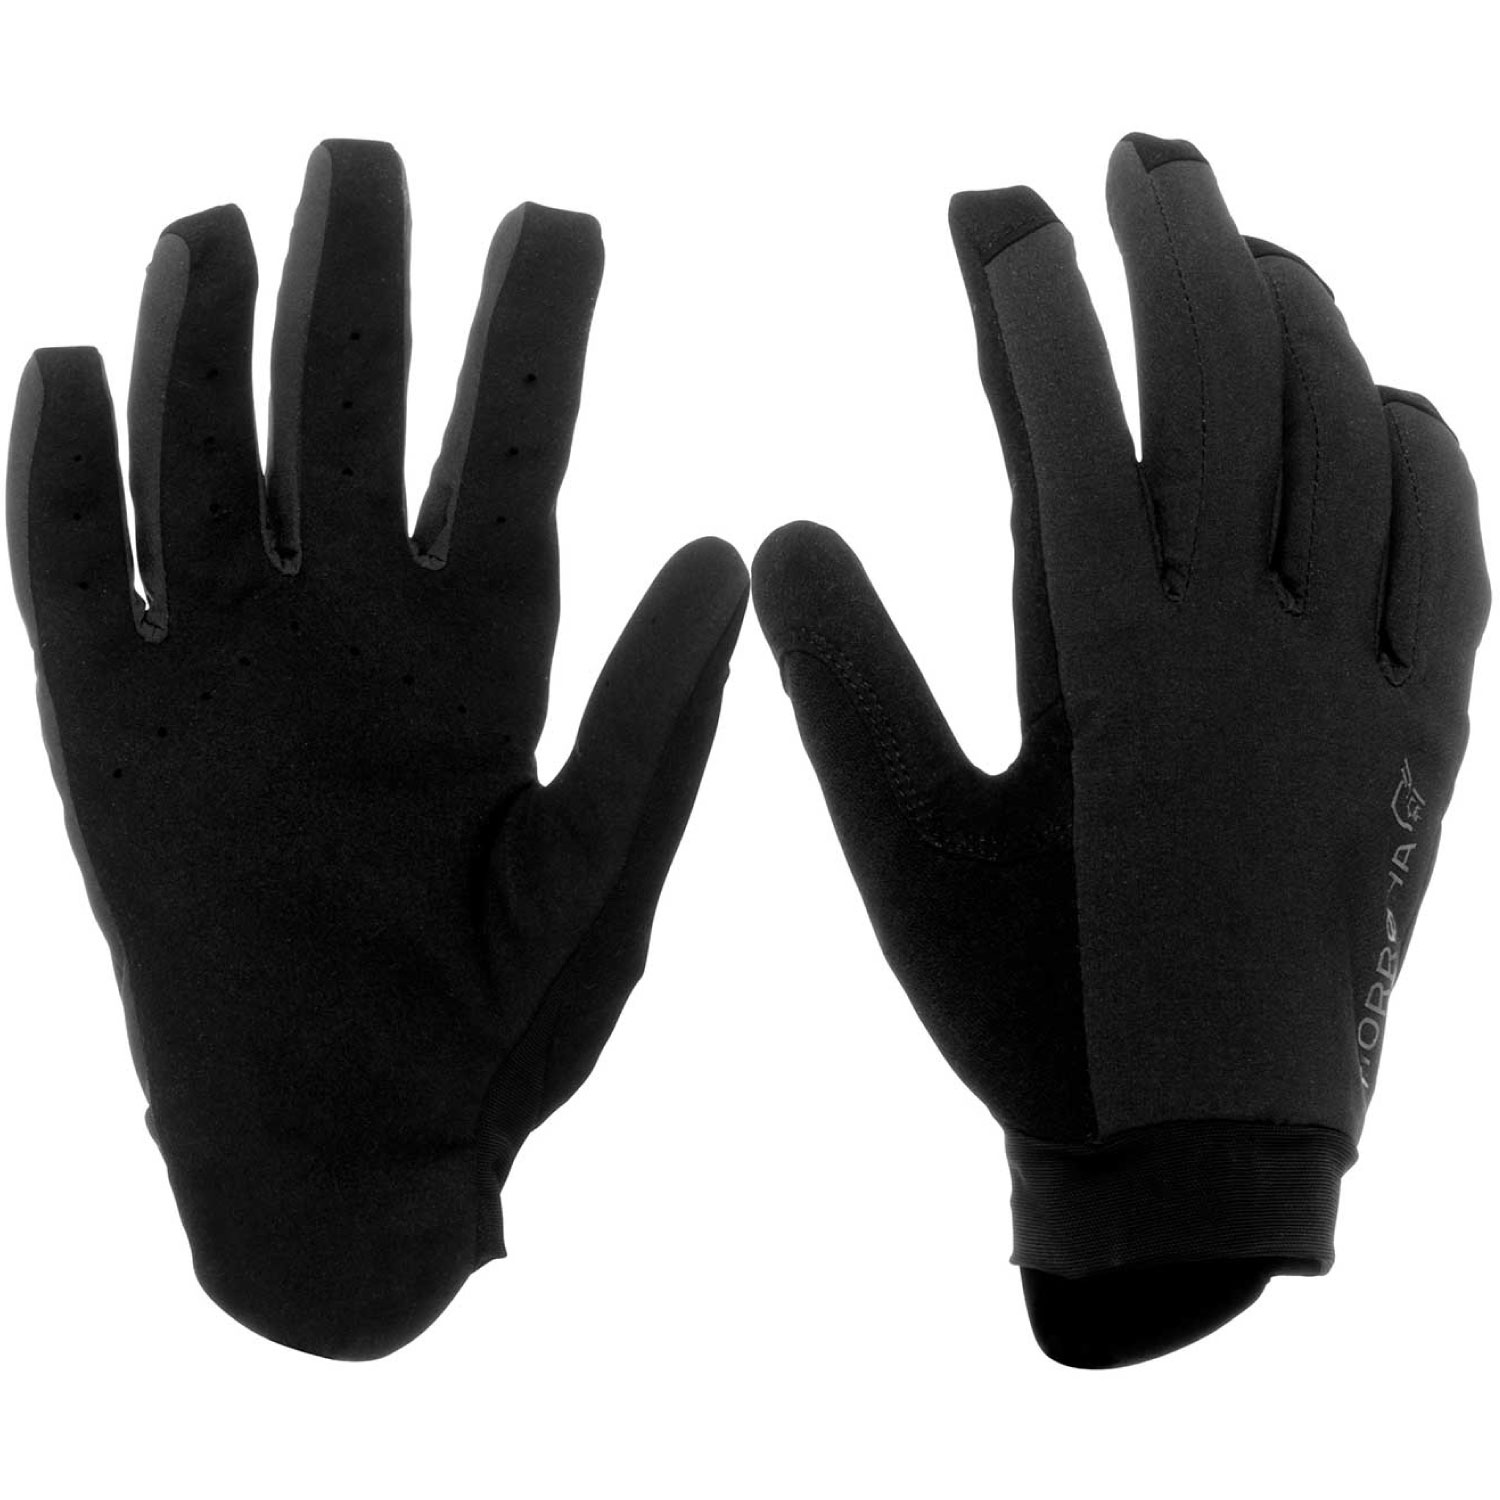 skibotn flex1 Gloves (M/W)